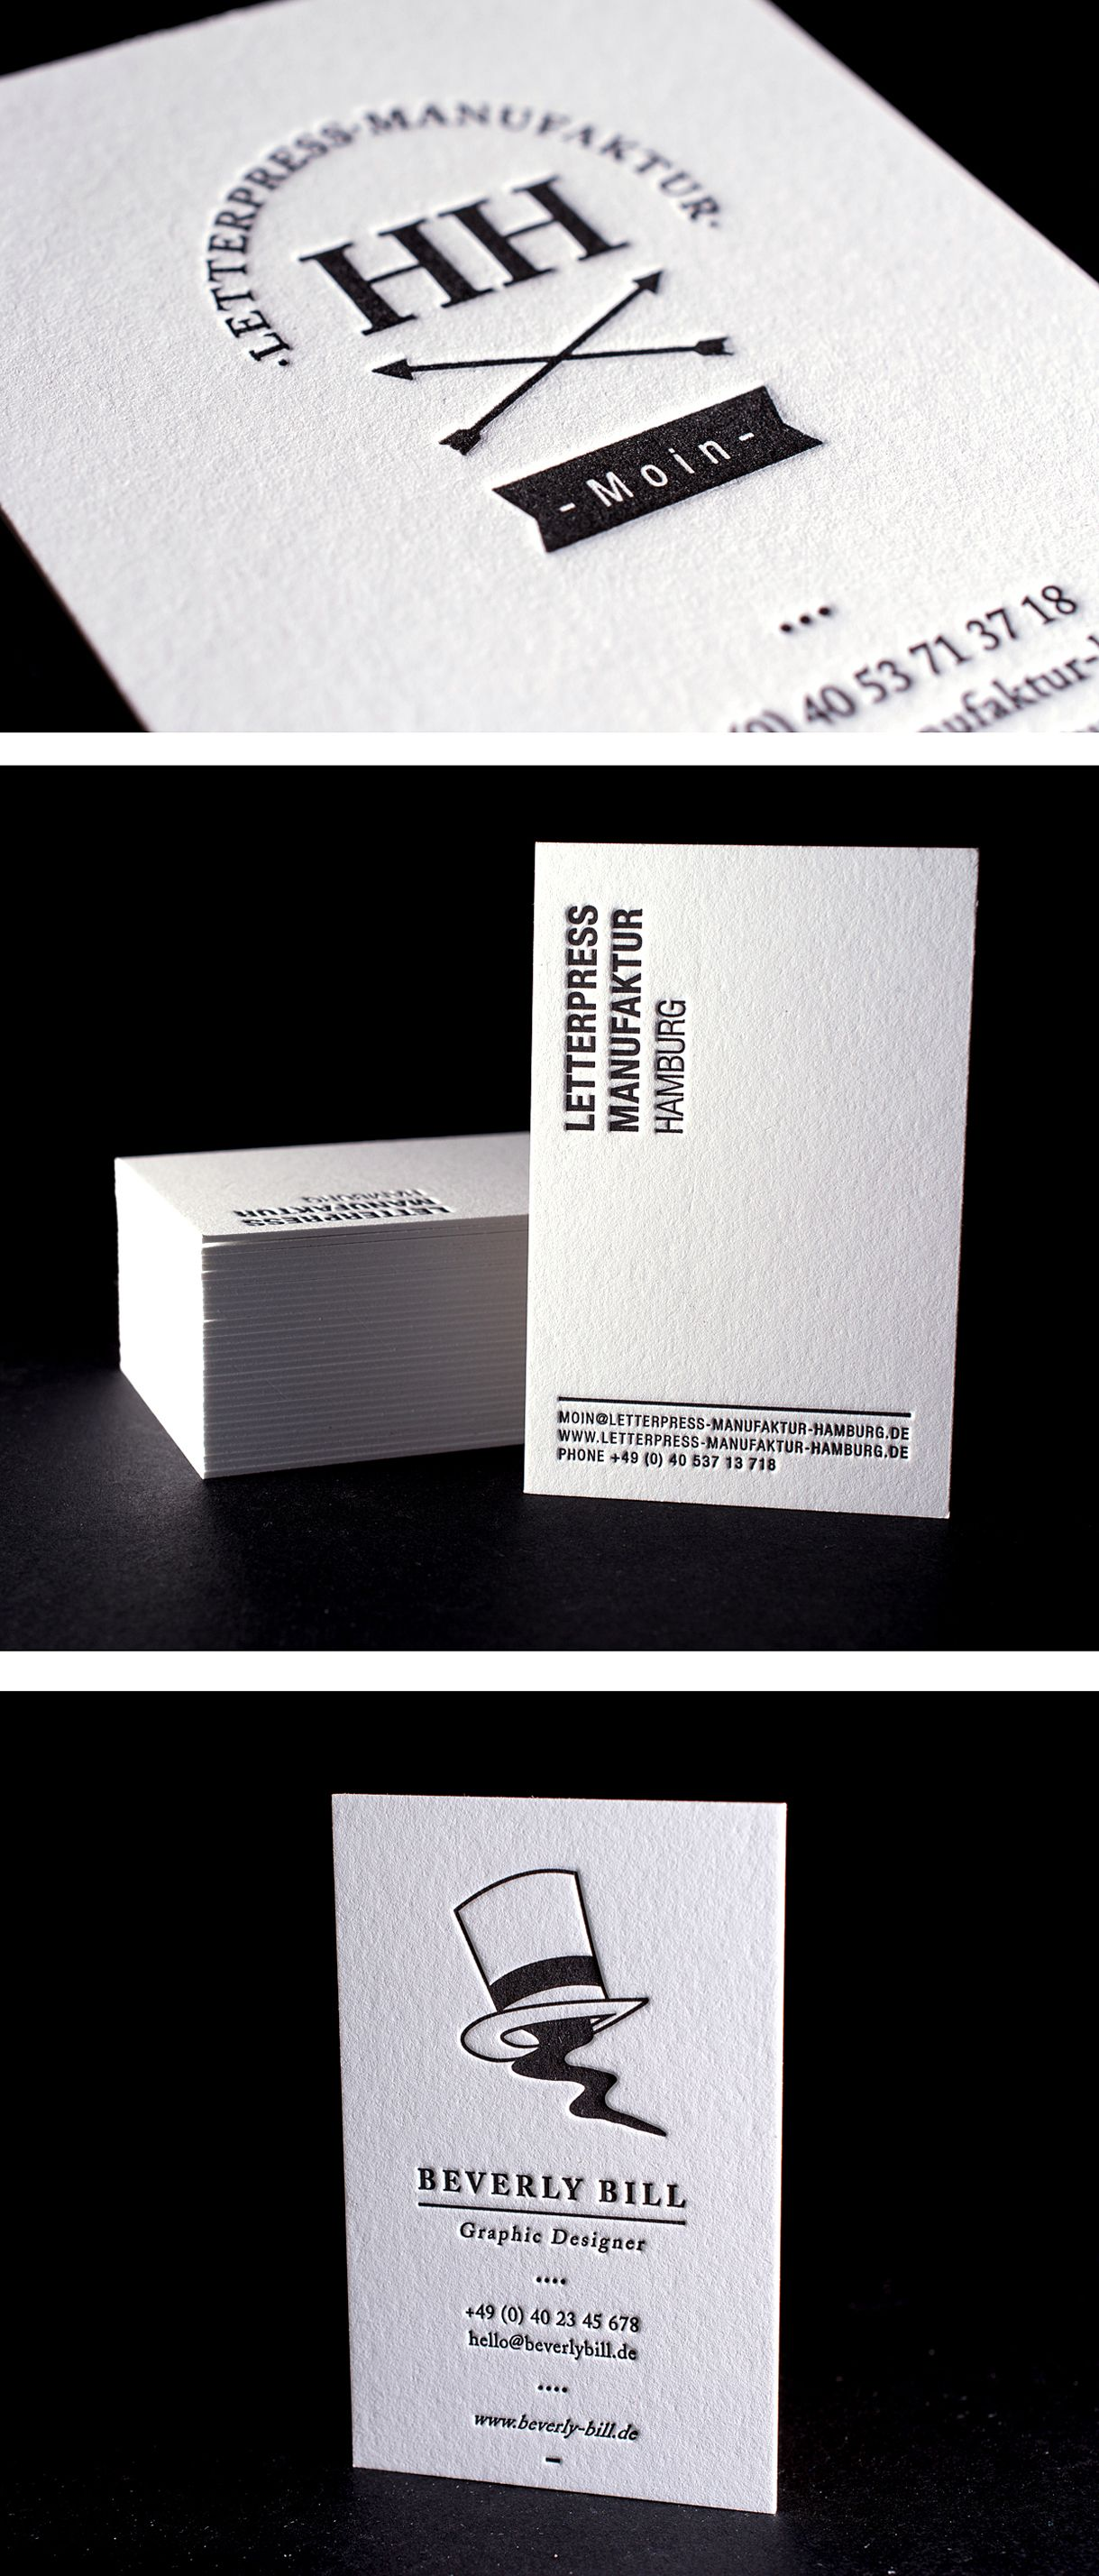 650 gsm letterpress paper with 1 3 volume and deep impression